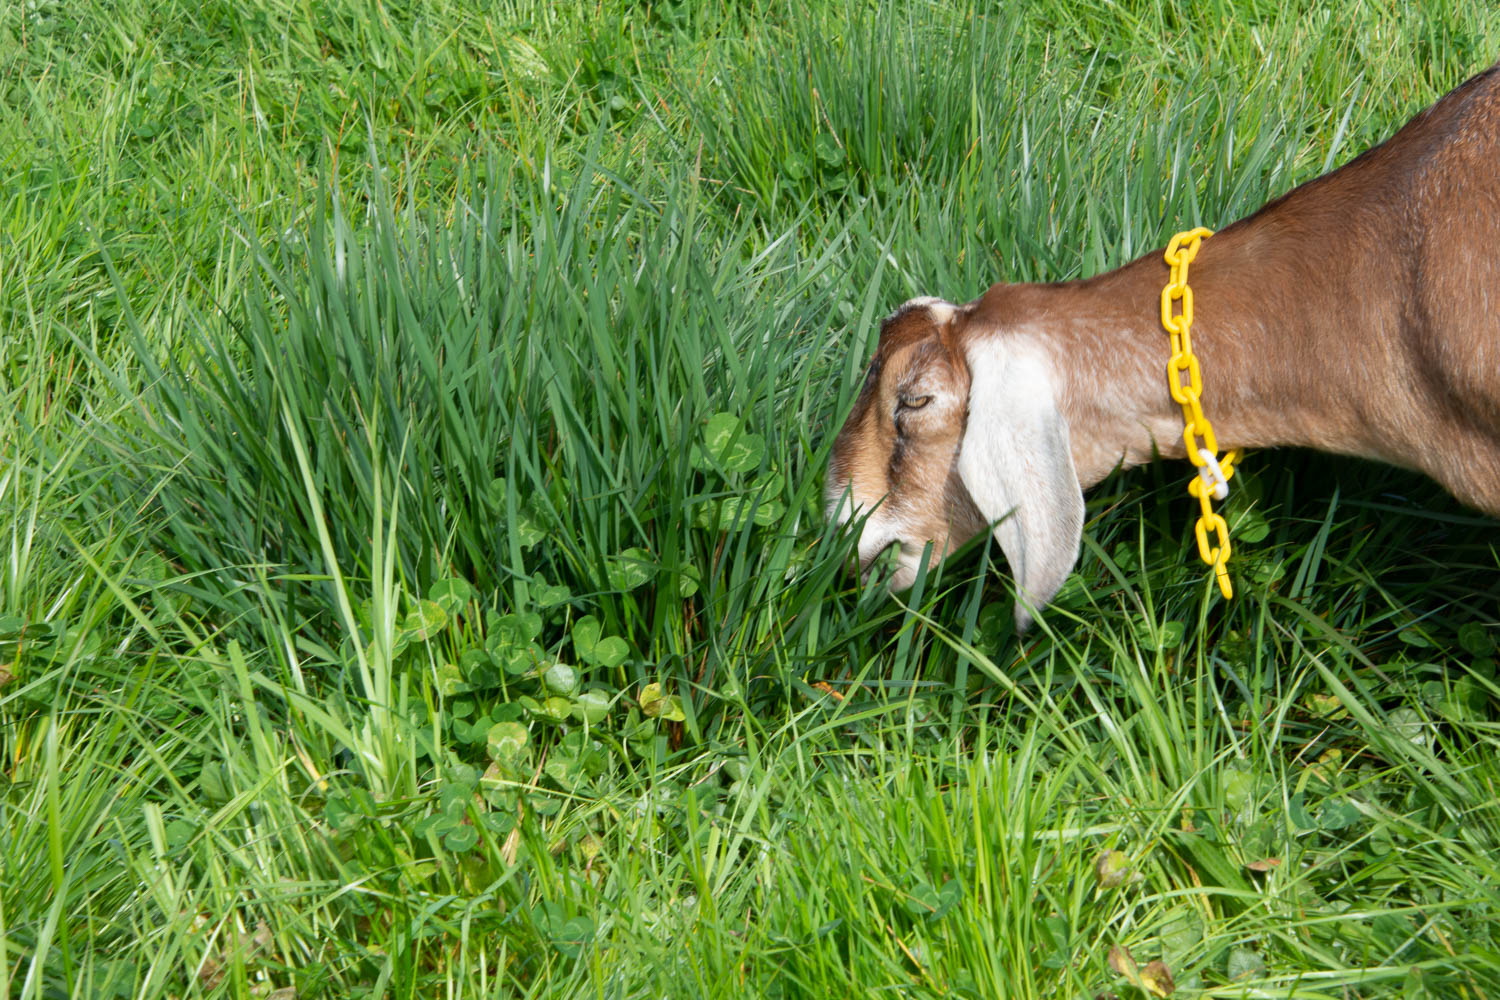 Goats eating fescue.